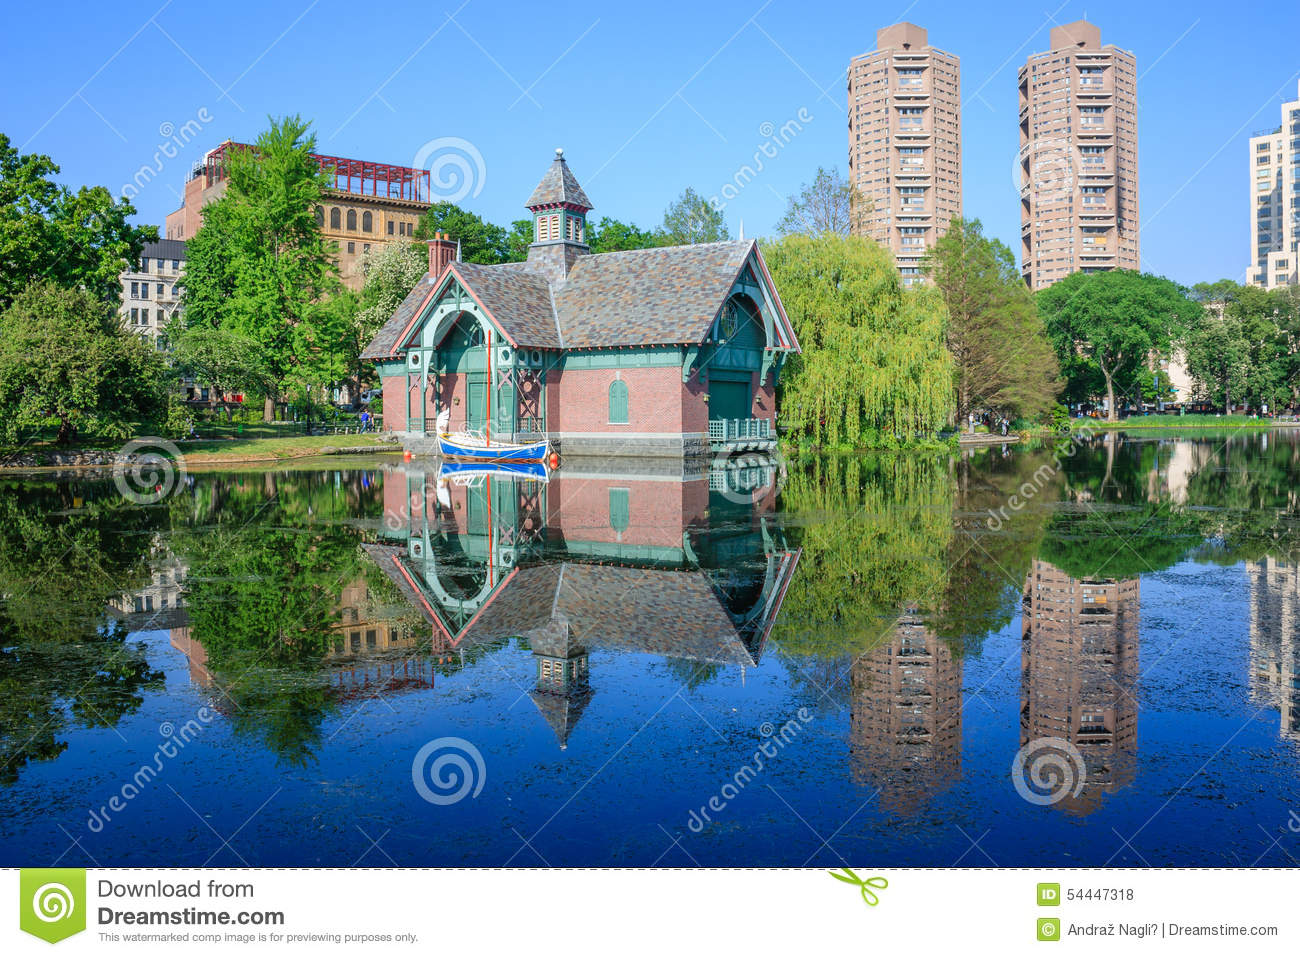 Charles A. Dana Discovery Center - Central Park, New York City Stock Photo - Image: 54447318